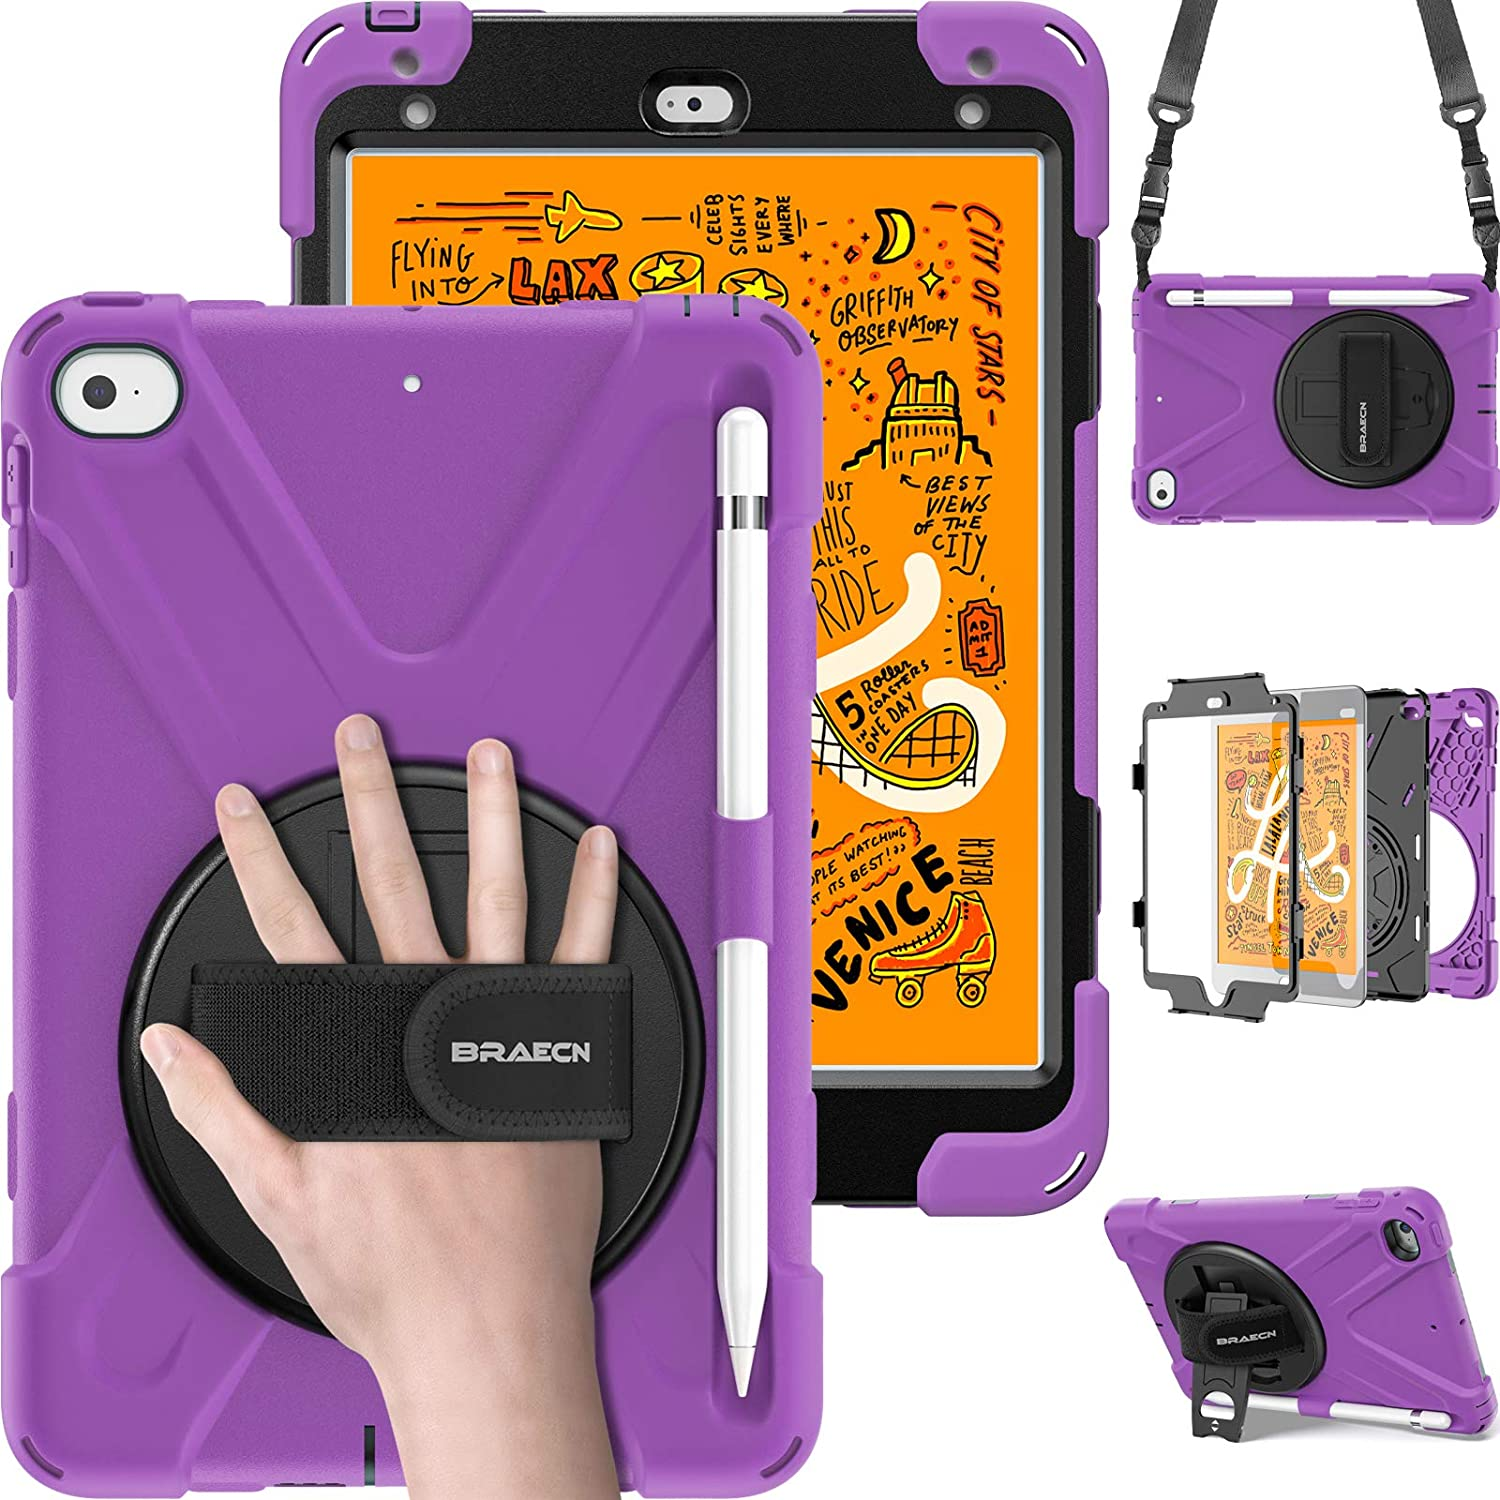 BB5600 iPad Mini sleeve case purple design with pocket and leather straps